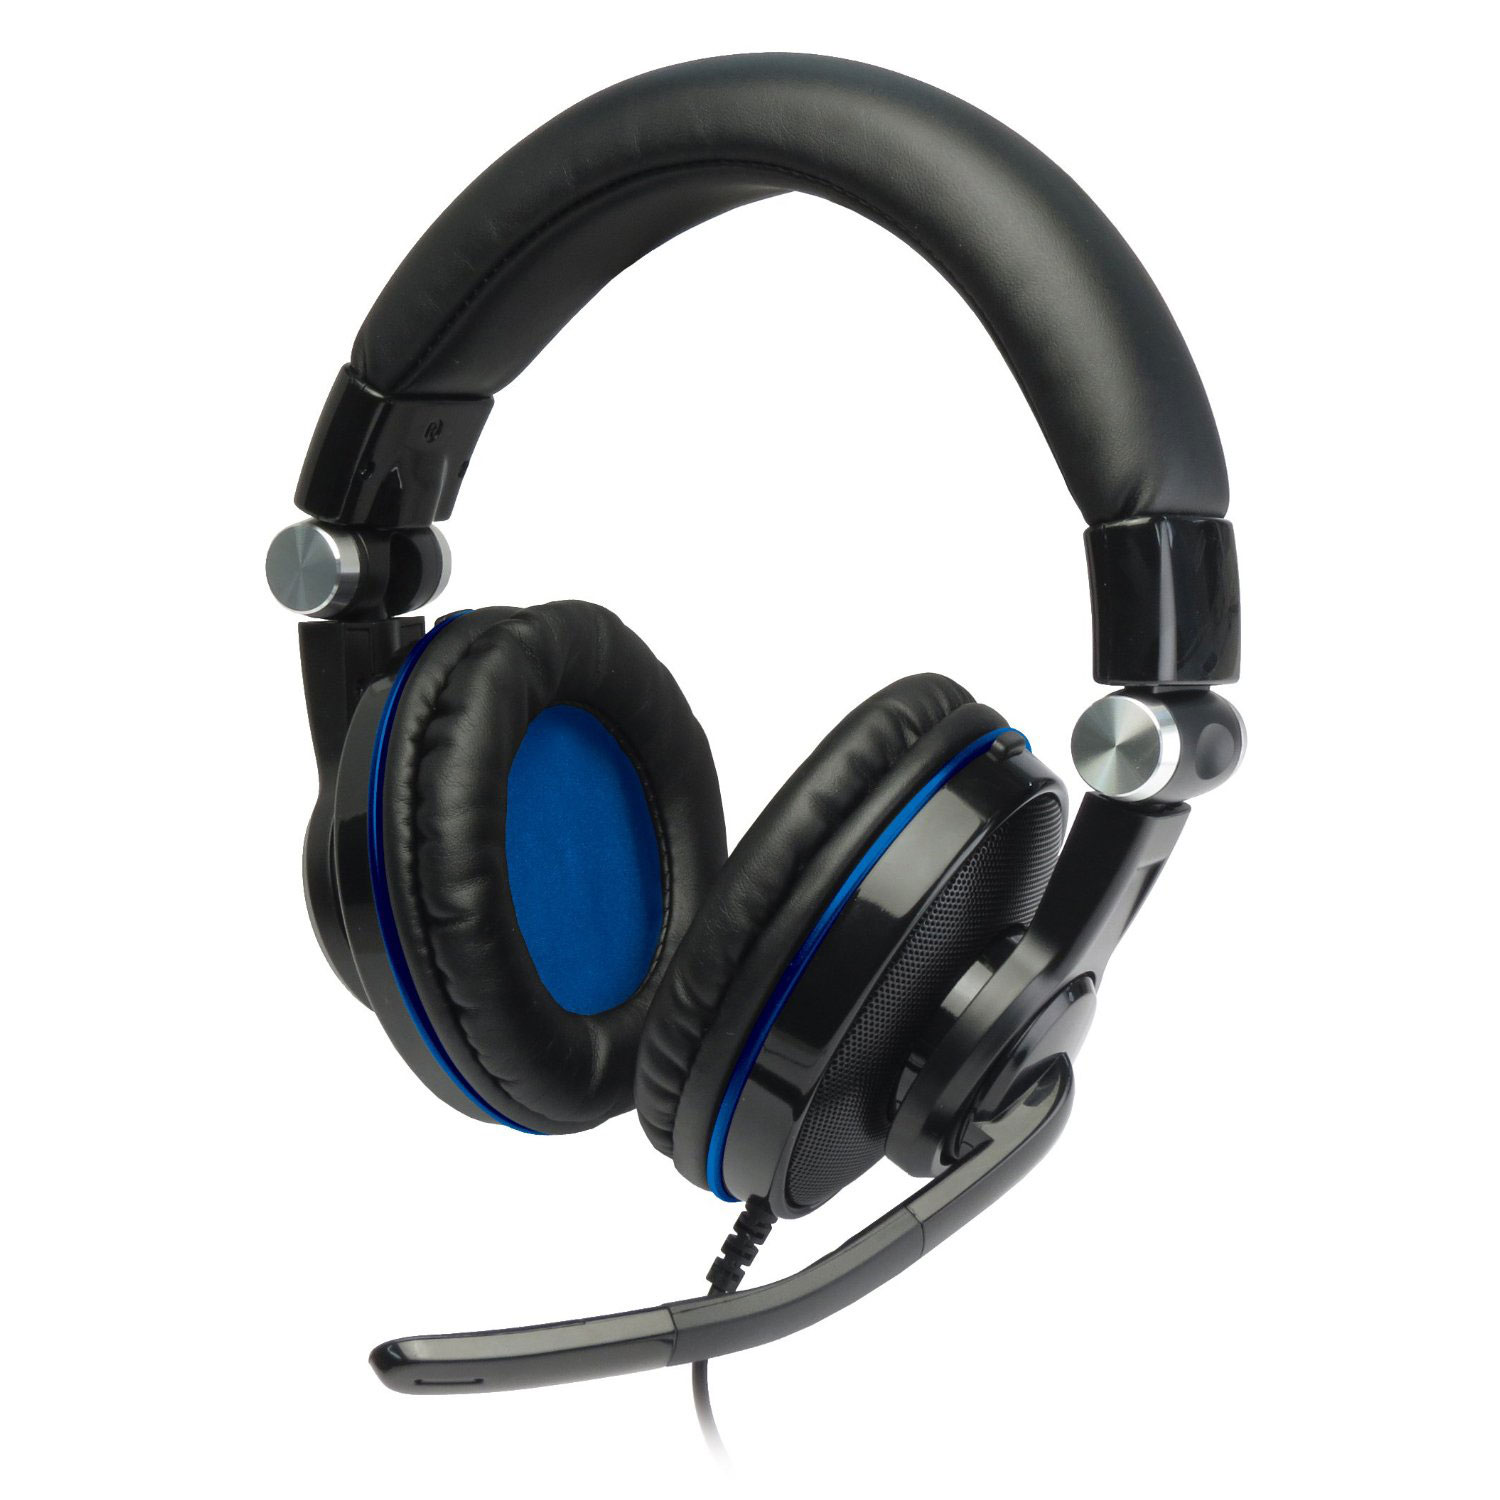 hori gaming headset pc ps3 xbox360 accessoires ps3 hori sur ldlc. Black Bedroom Furniture Sets. Home Design Ideas